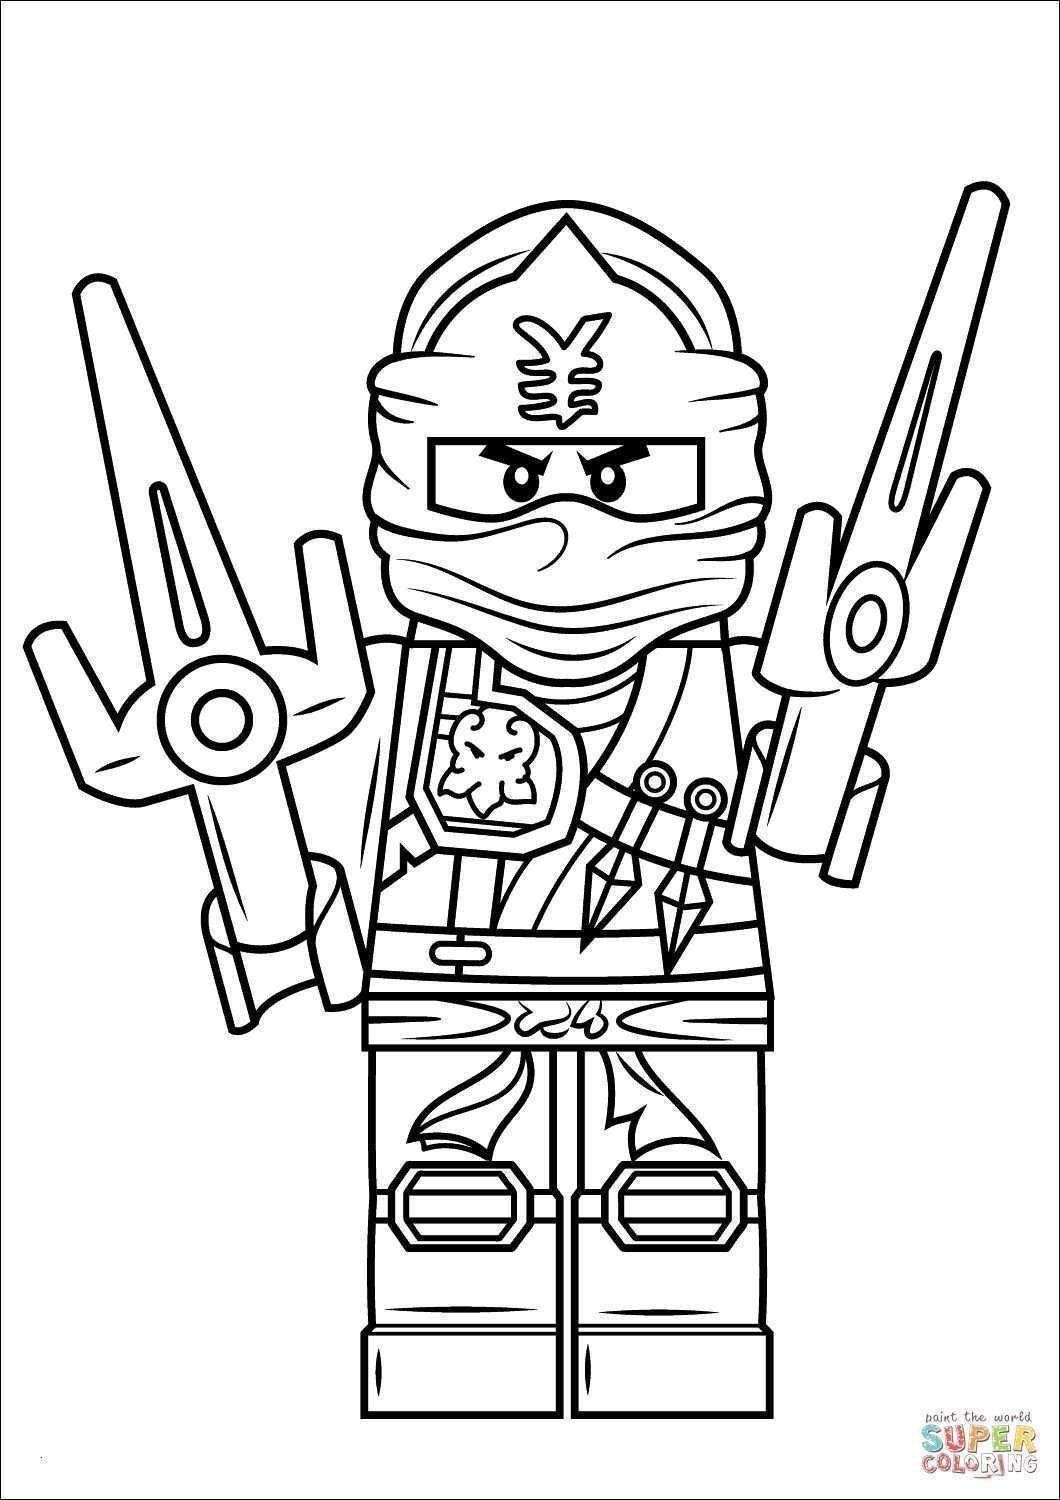 Lego Ninjago Coloring Pages Lovely Ausmalbilder Ninjago Jay Mindbending Coloring Pages Lego Ninjago Fo Lego Coloring Lego Coloring Pages Ninjago Coloring Pages